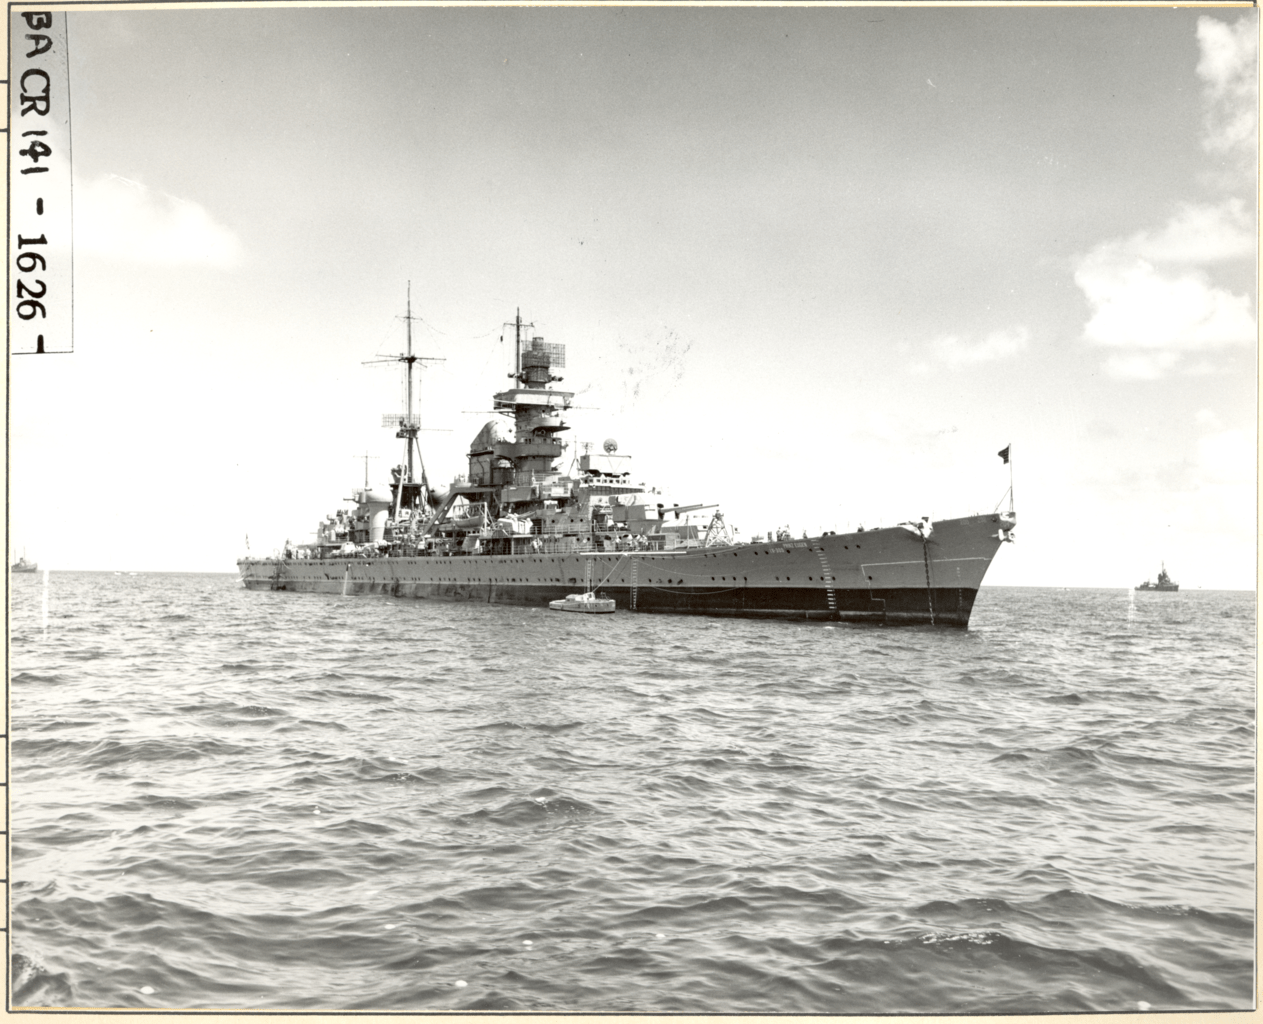 https://i1.wp.com/upload.wikimedia.org/wikipedia/commons/thumb/1/1f/USS_Prinz_Eugen_%28IX_300%29_at_sea_during_Operation_%22Crossroads%22._%C2%BE_view_STBD_forward._-_NARA_-_80-G-627445.tif/lossless-page1-1263px-USS_Prinz_Eugen_%28IX_300%29_at_sea_during_Operation_%22Crossroads%22._%C2%BE_view_STBD_forward._-_NARA_-_80-G-627445.tif.png